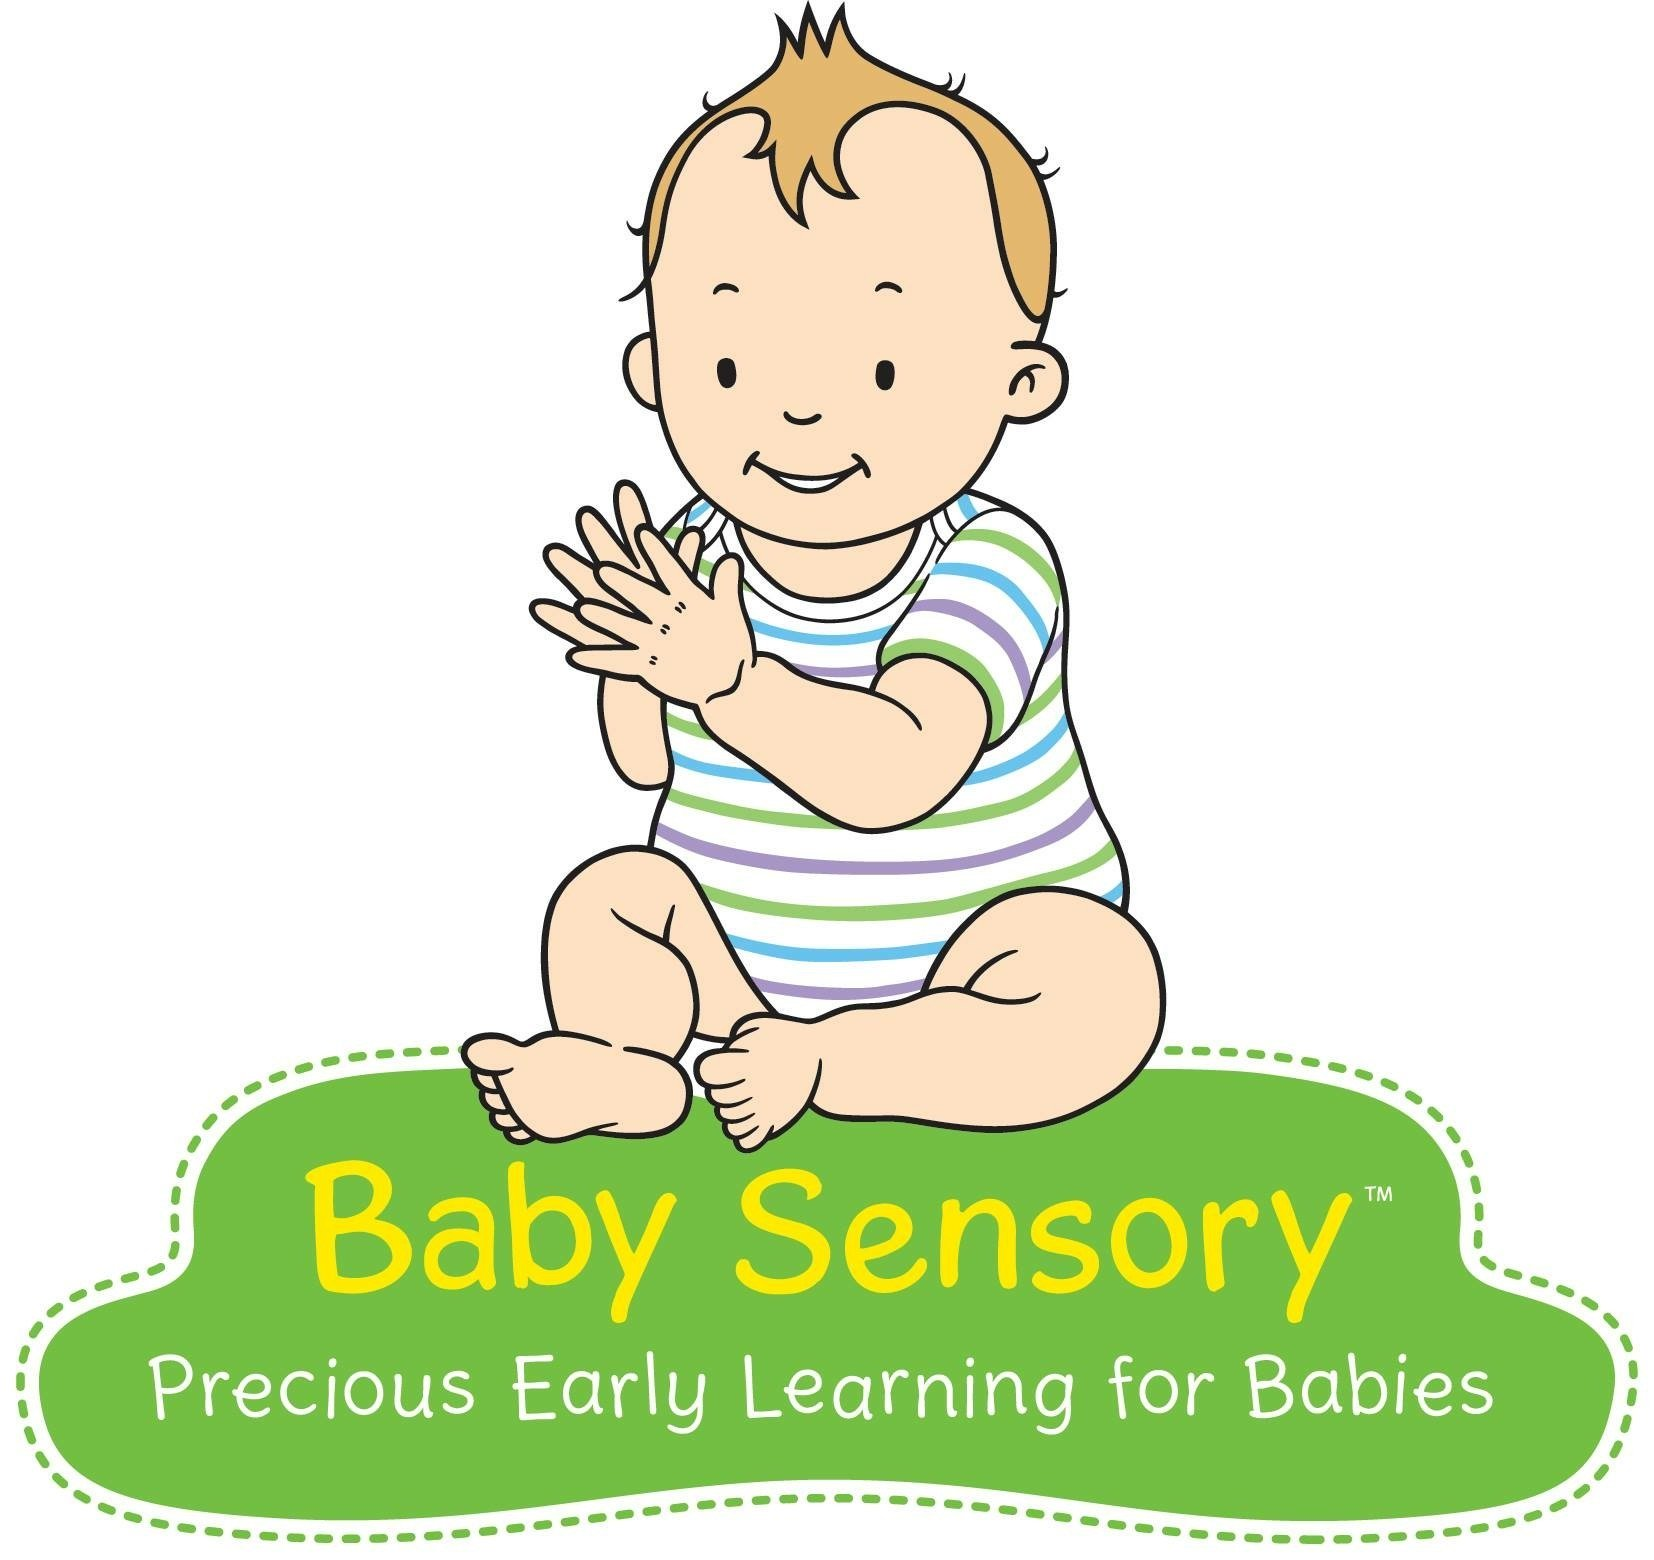 play groups and cafes for babies and toddlers around Barnsley, Baby Sensory